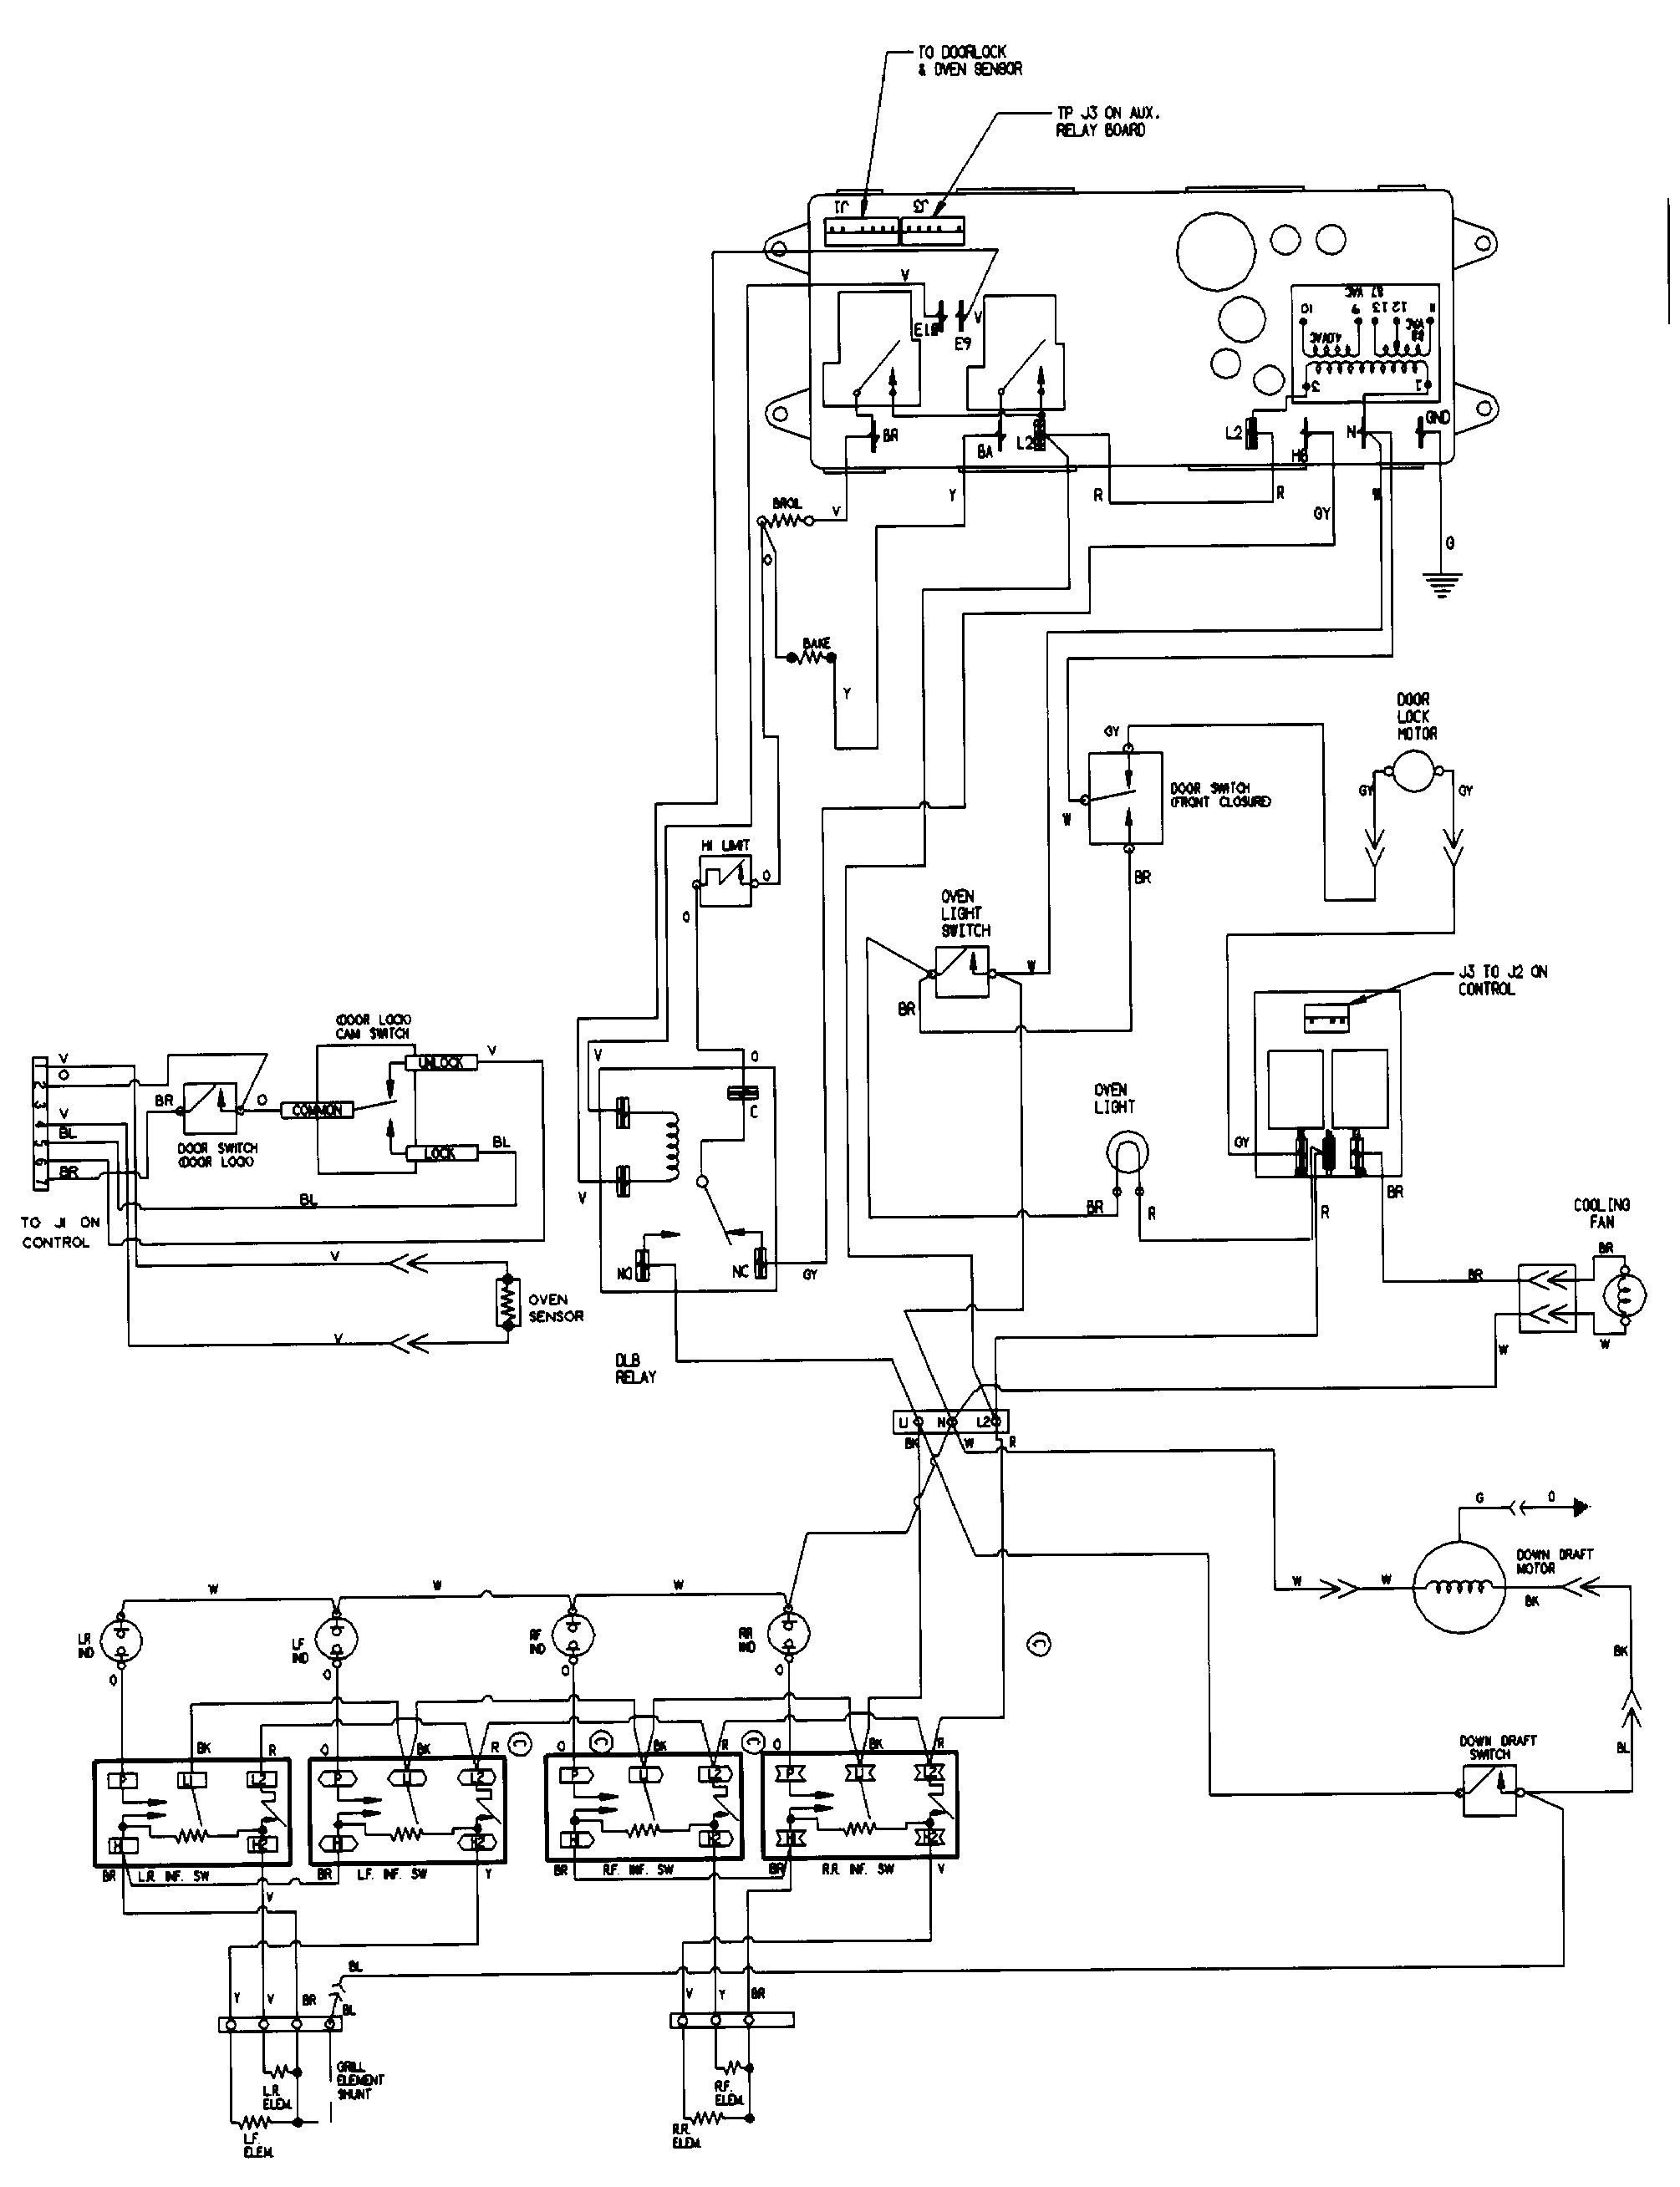 2007 Pontiac Grand Prix Fuse Diagram Wiring Library Engine 2001 3 1 Trusted Diagrams U2022 Rh Radkan Co